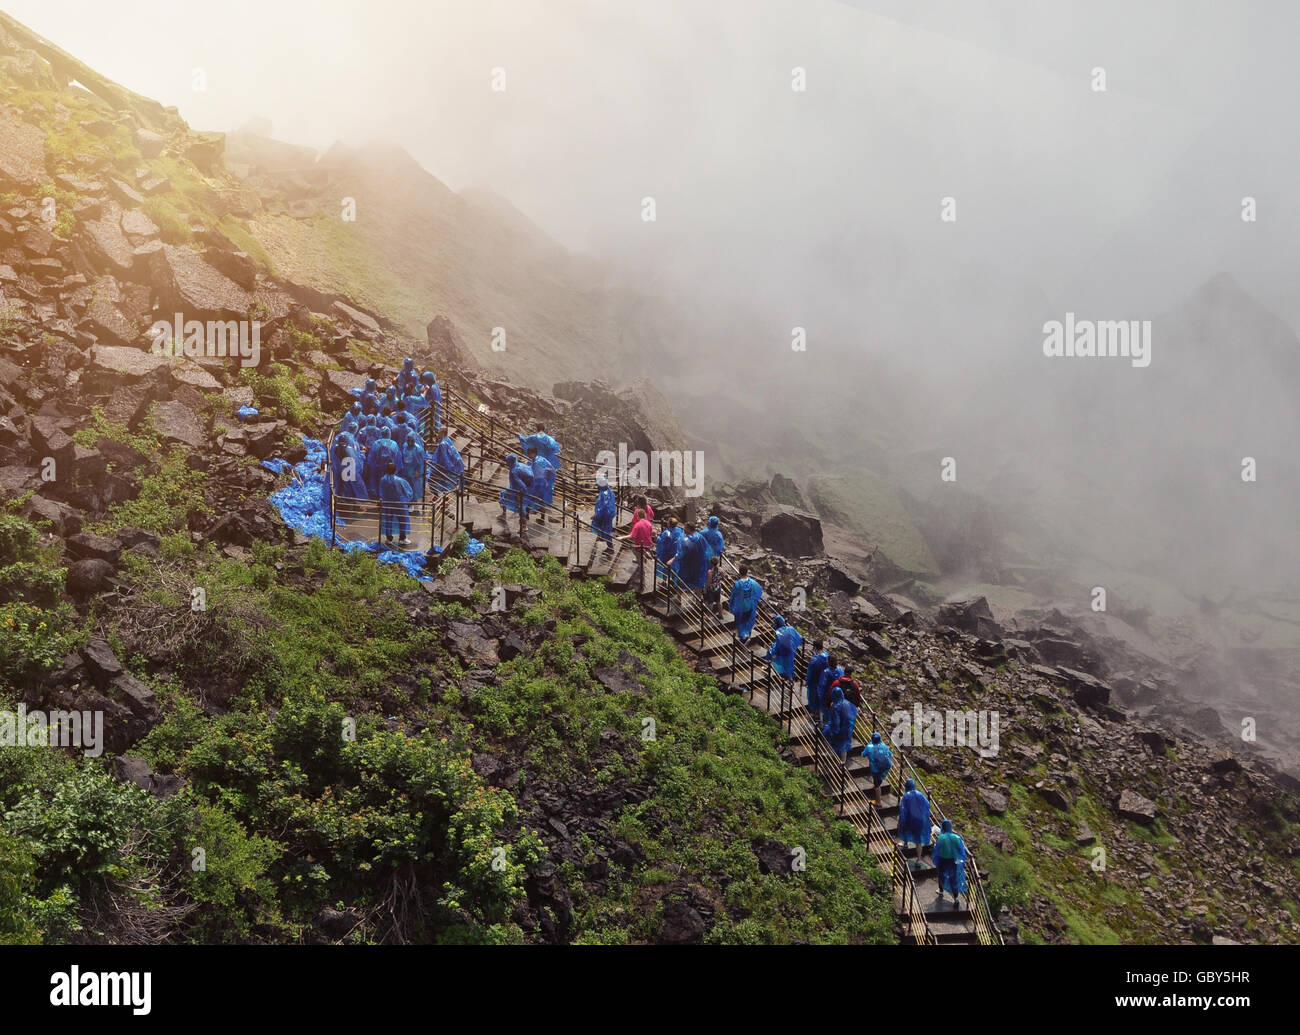 Tourists are walking up a stairway to Niagara Falls with wet water mist and blue raincoats on for a travel or nature - Stock Image